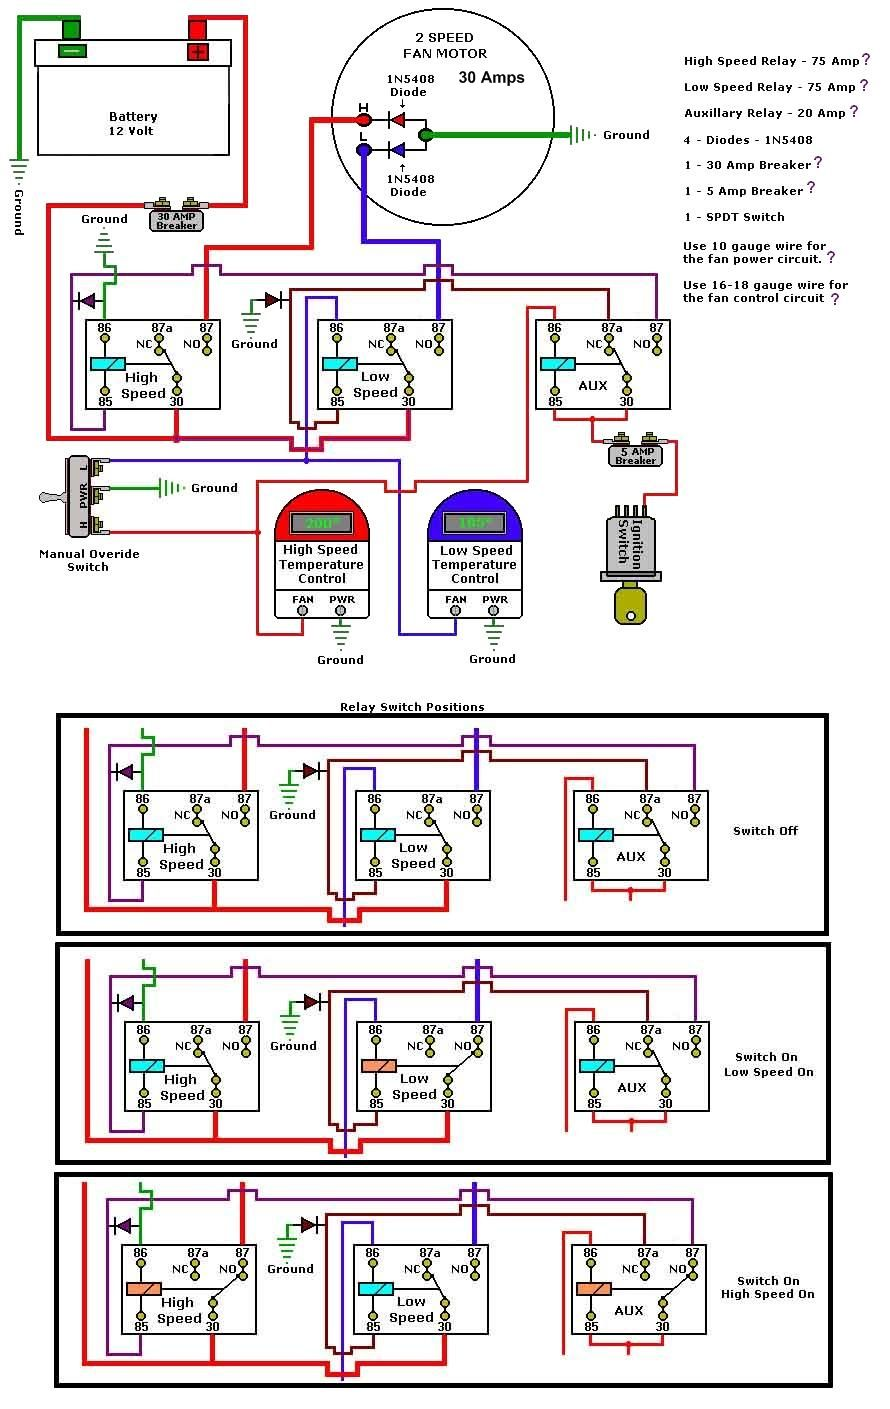 medium resolution of 3 speed fan motor wiring diagram impremedia net 3 speed electric fan wiring diagram 3 speed